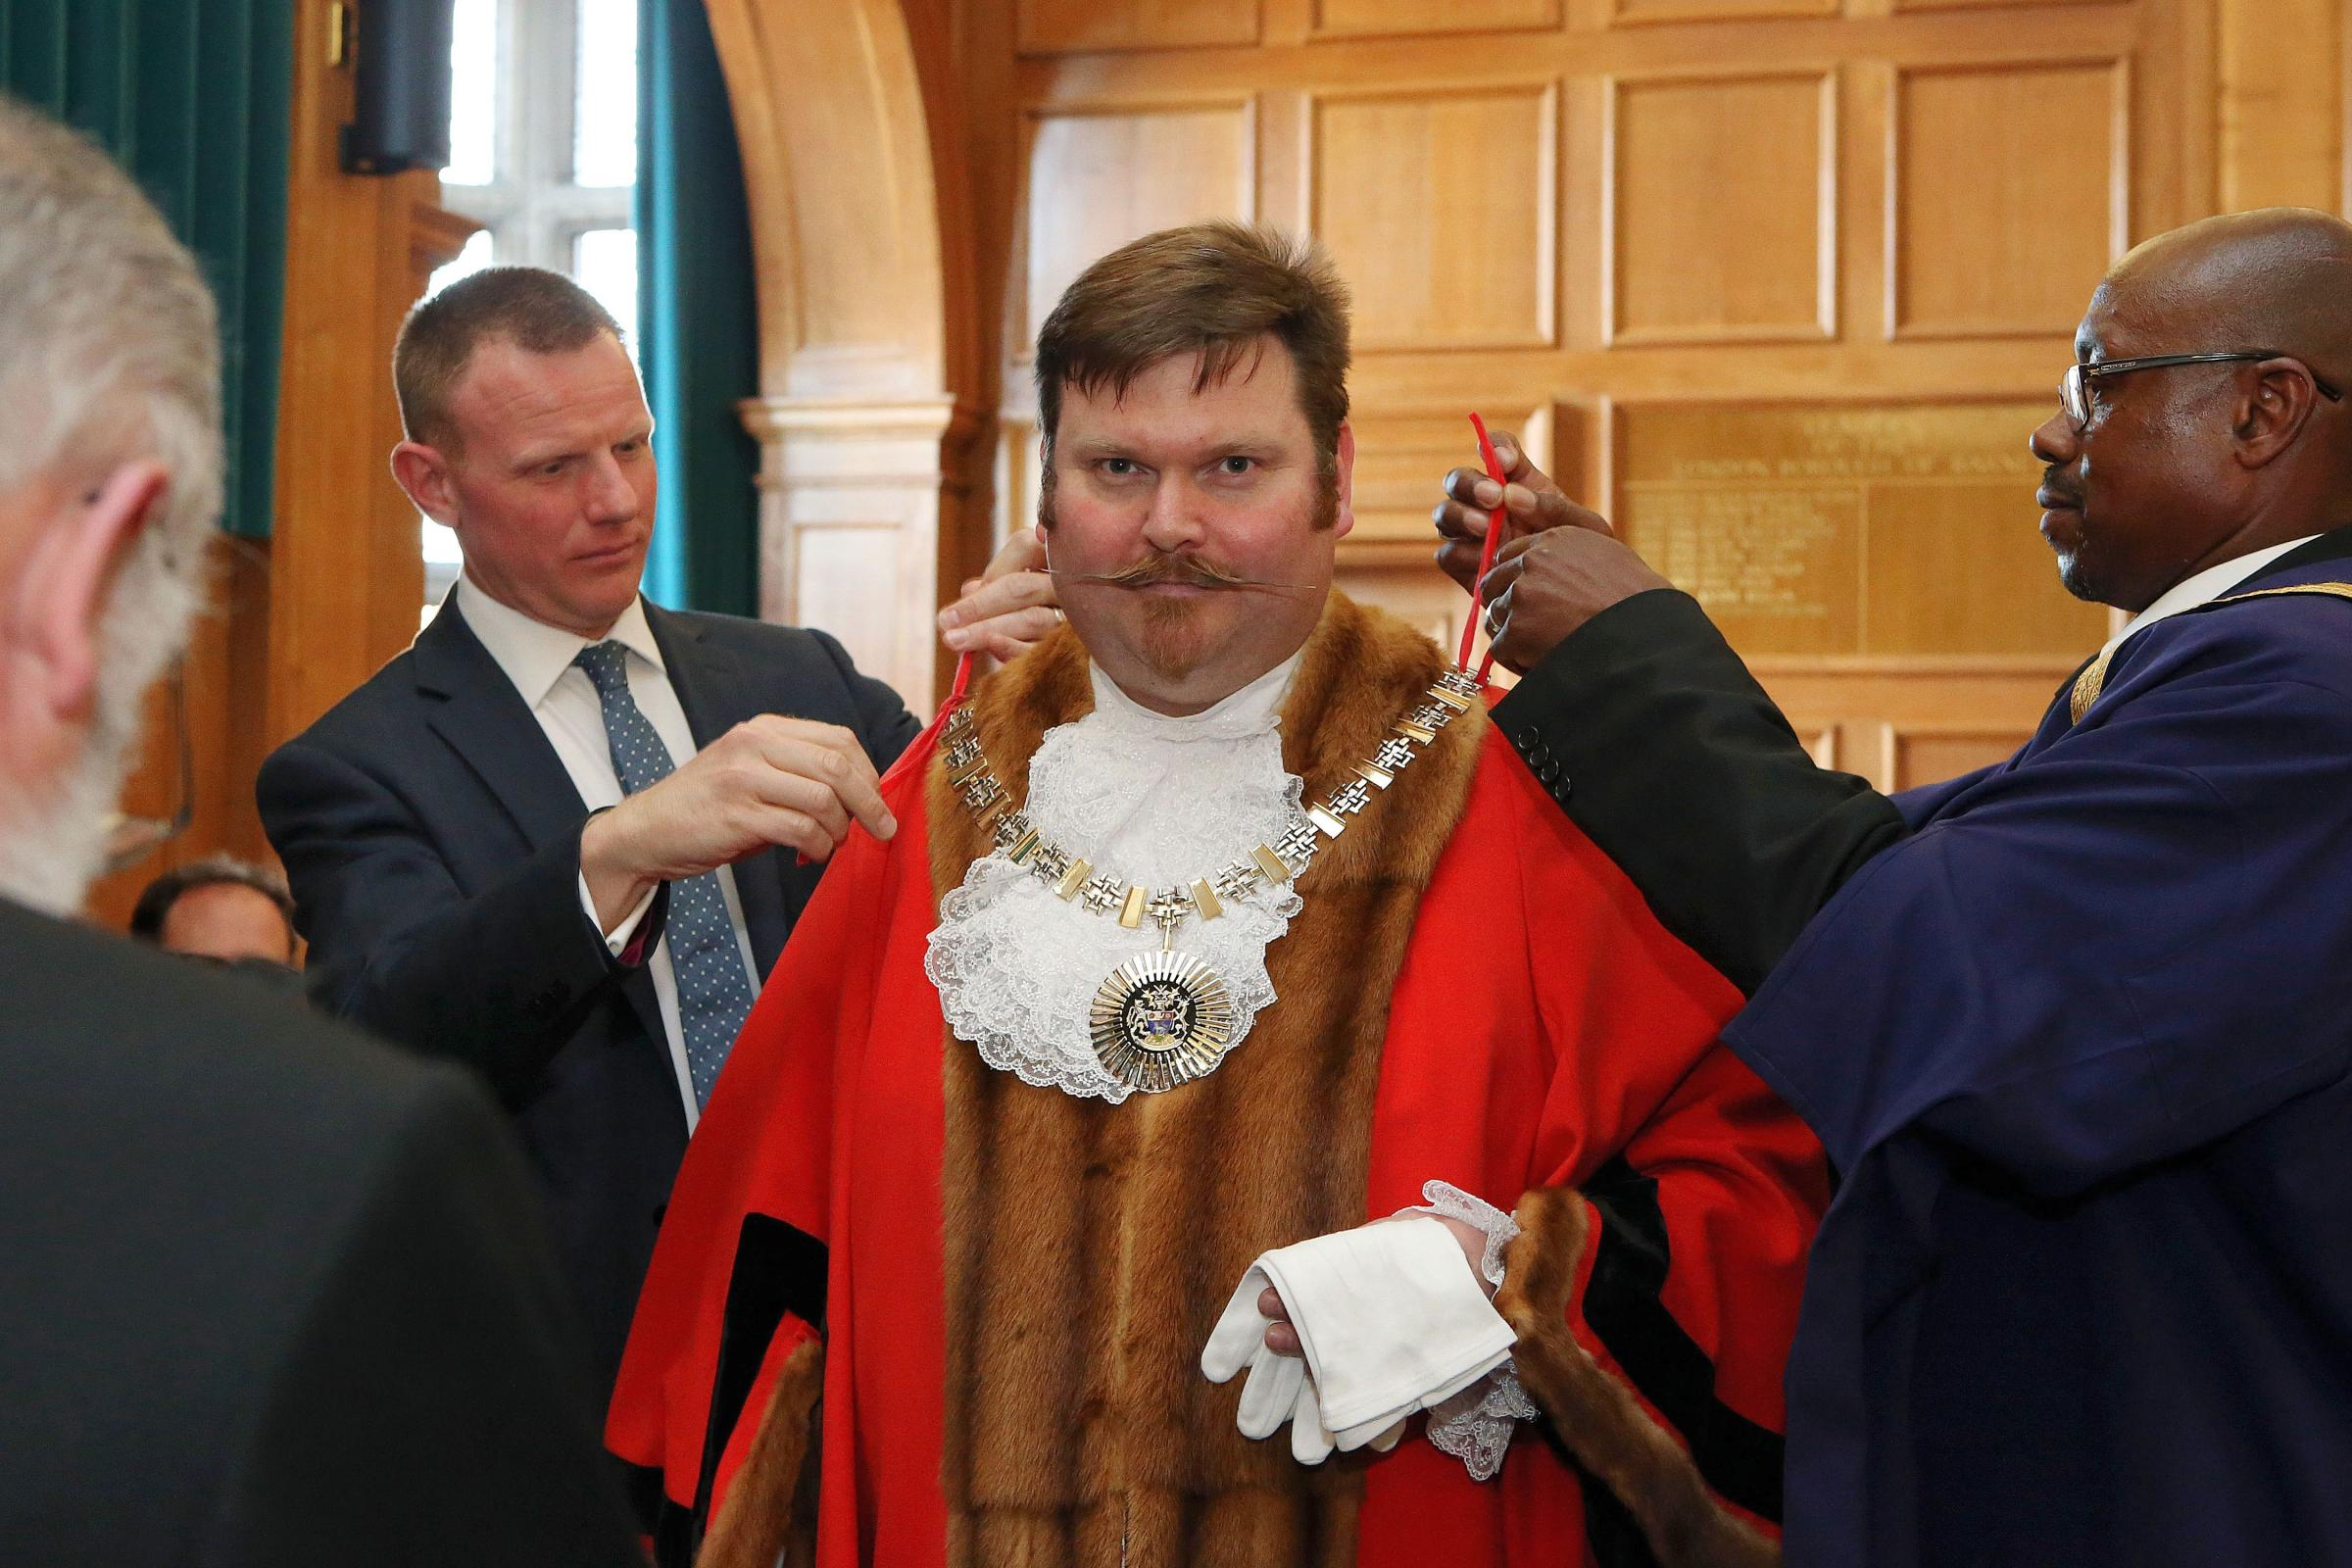 Mayor of Barnet Cllr Reuben Thompstone